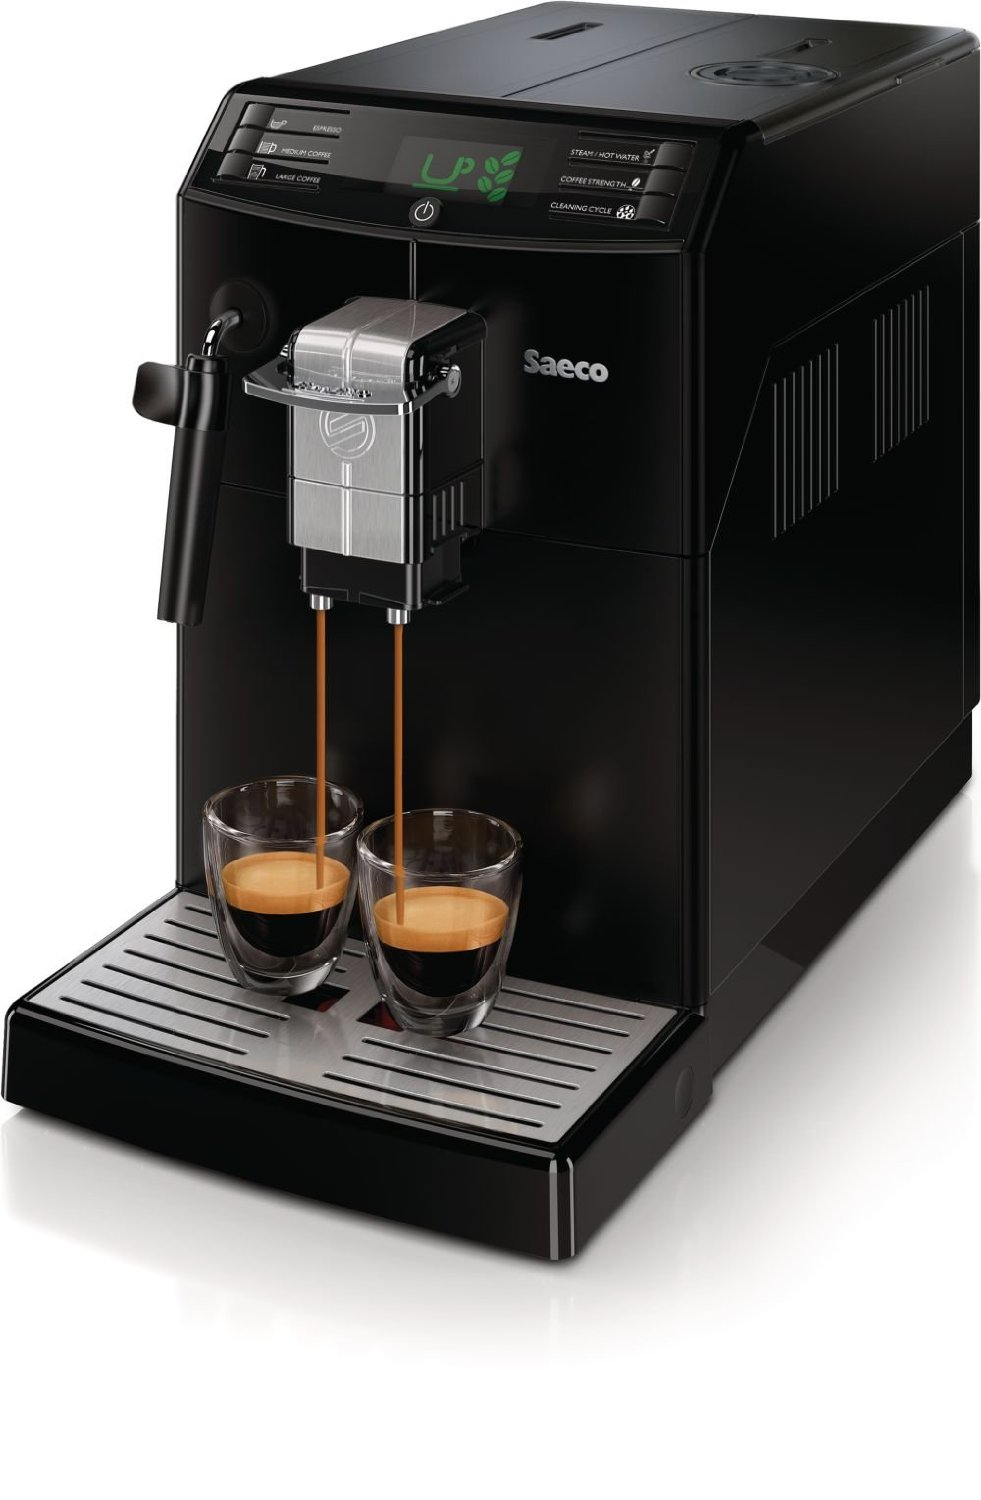 SAECO-HD8775-48-espresso-machine